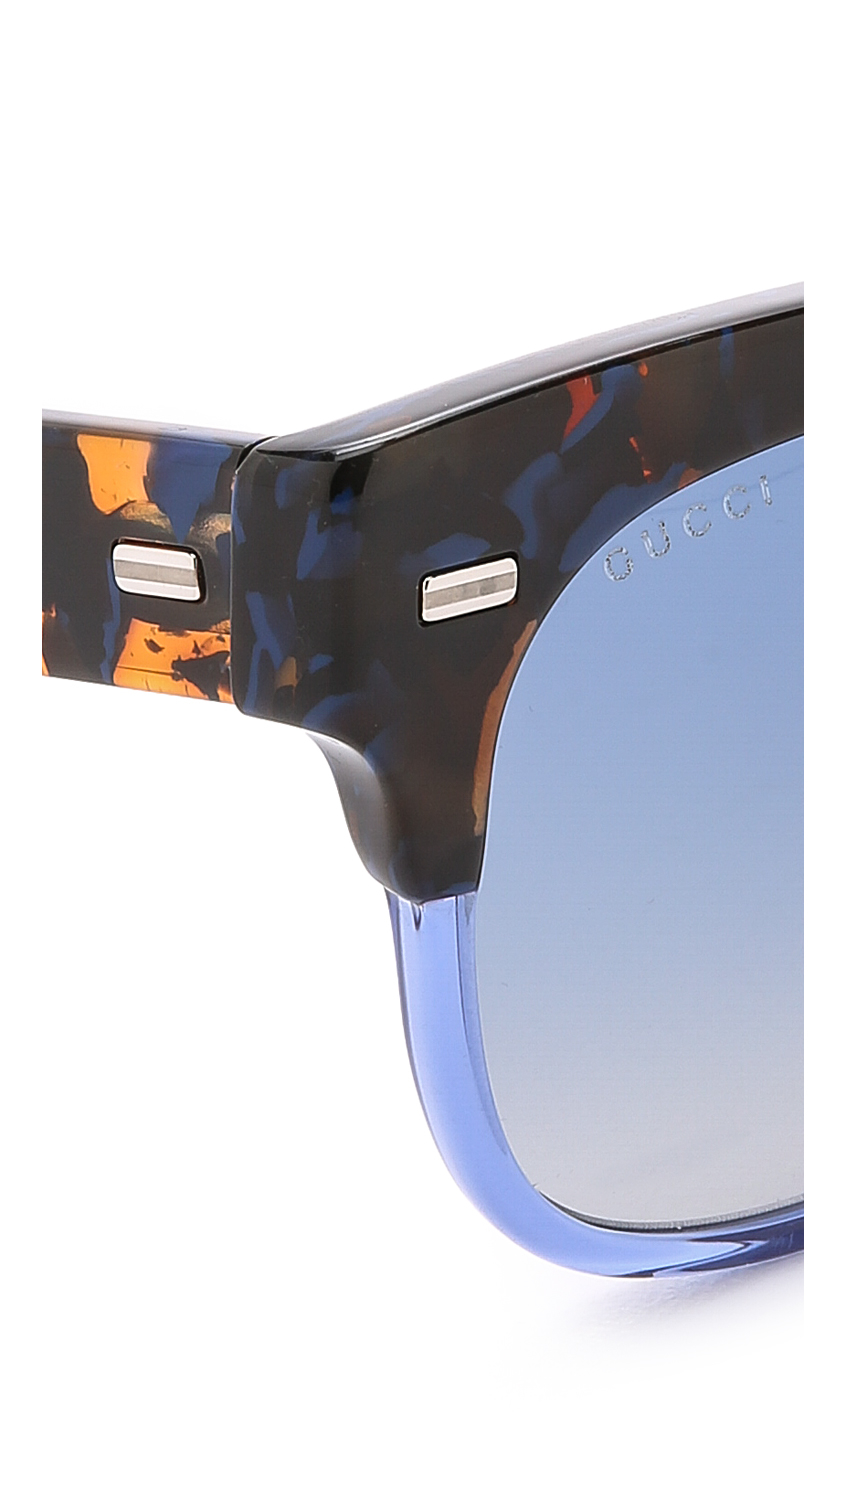 5b87d3e1cce0c Gucci Spotted Top Sunglasses in Blue - Lyst